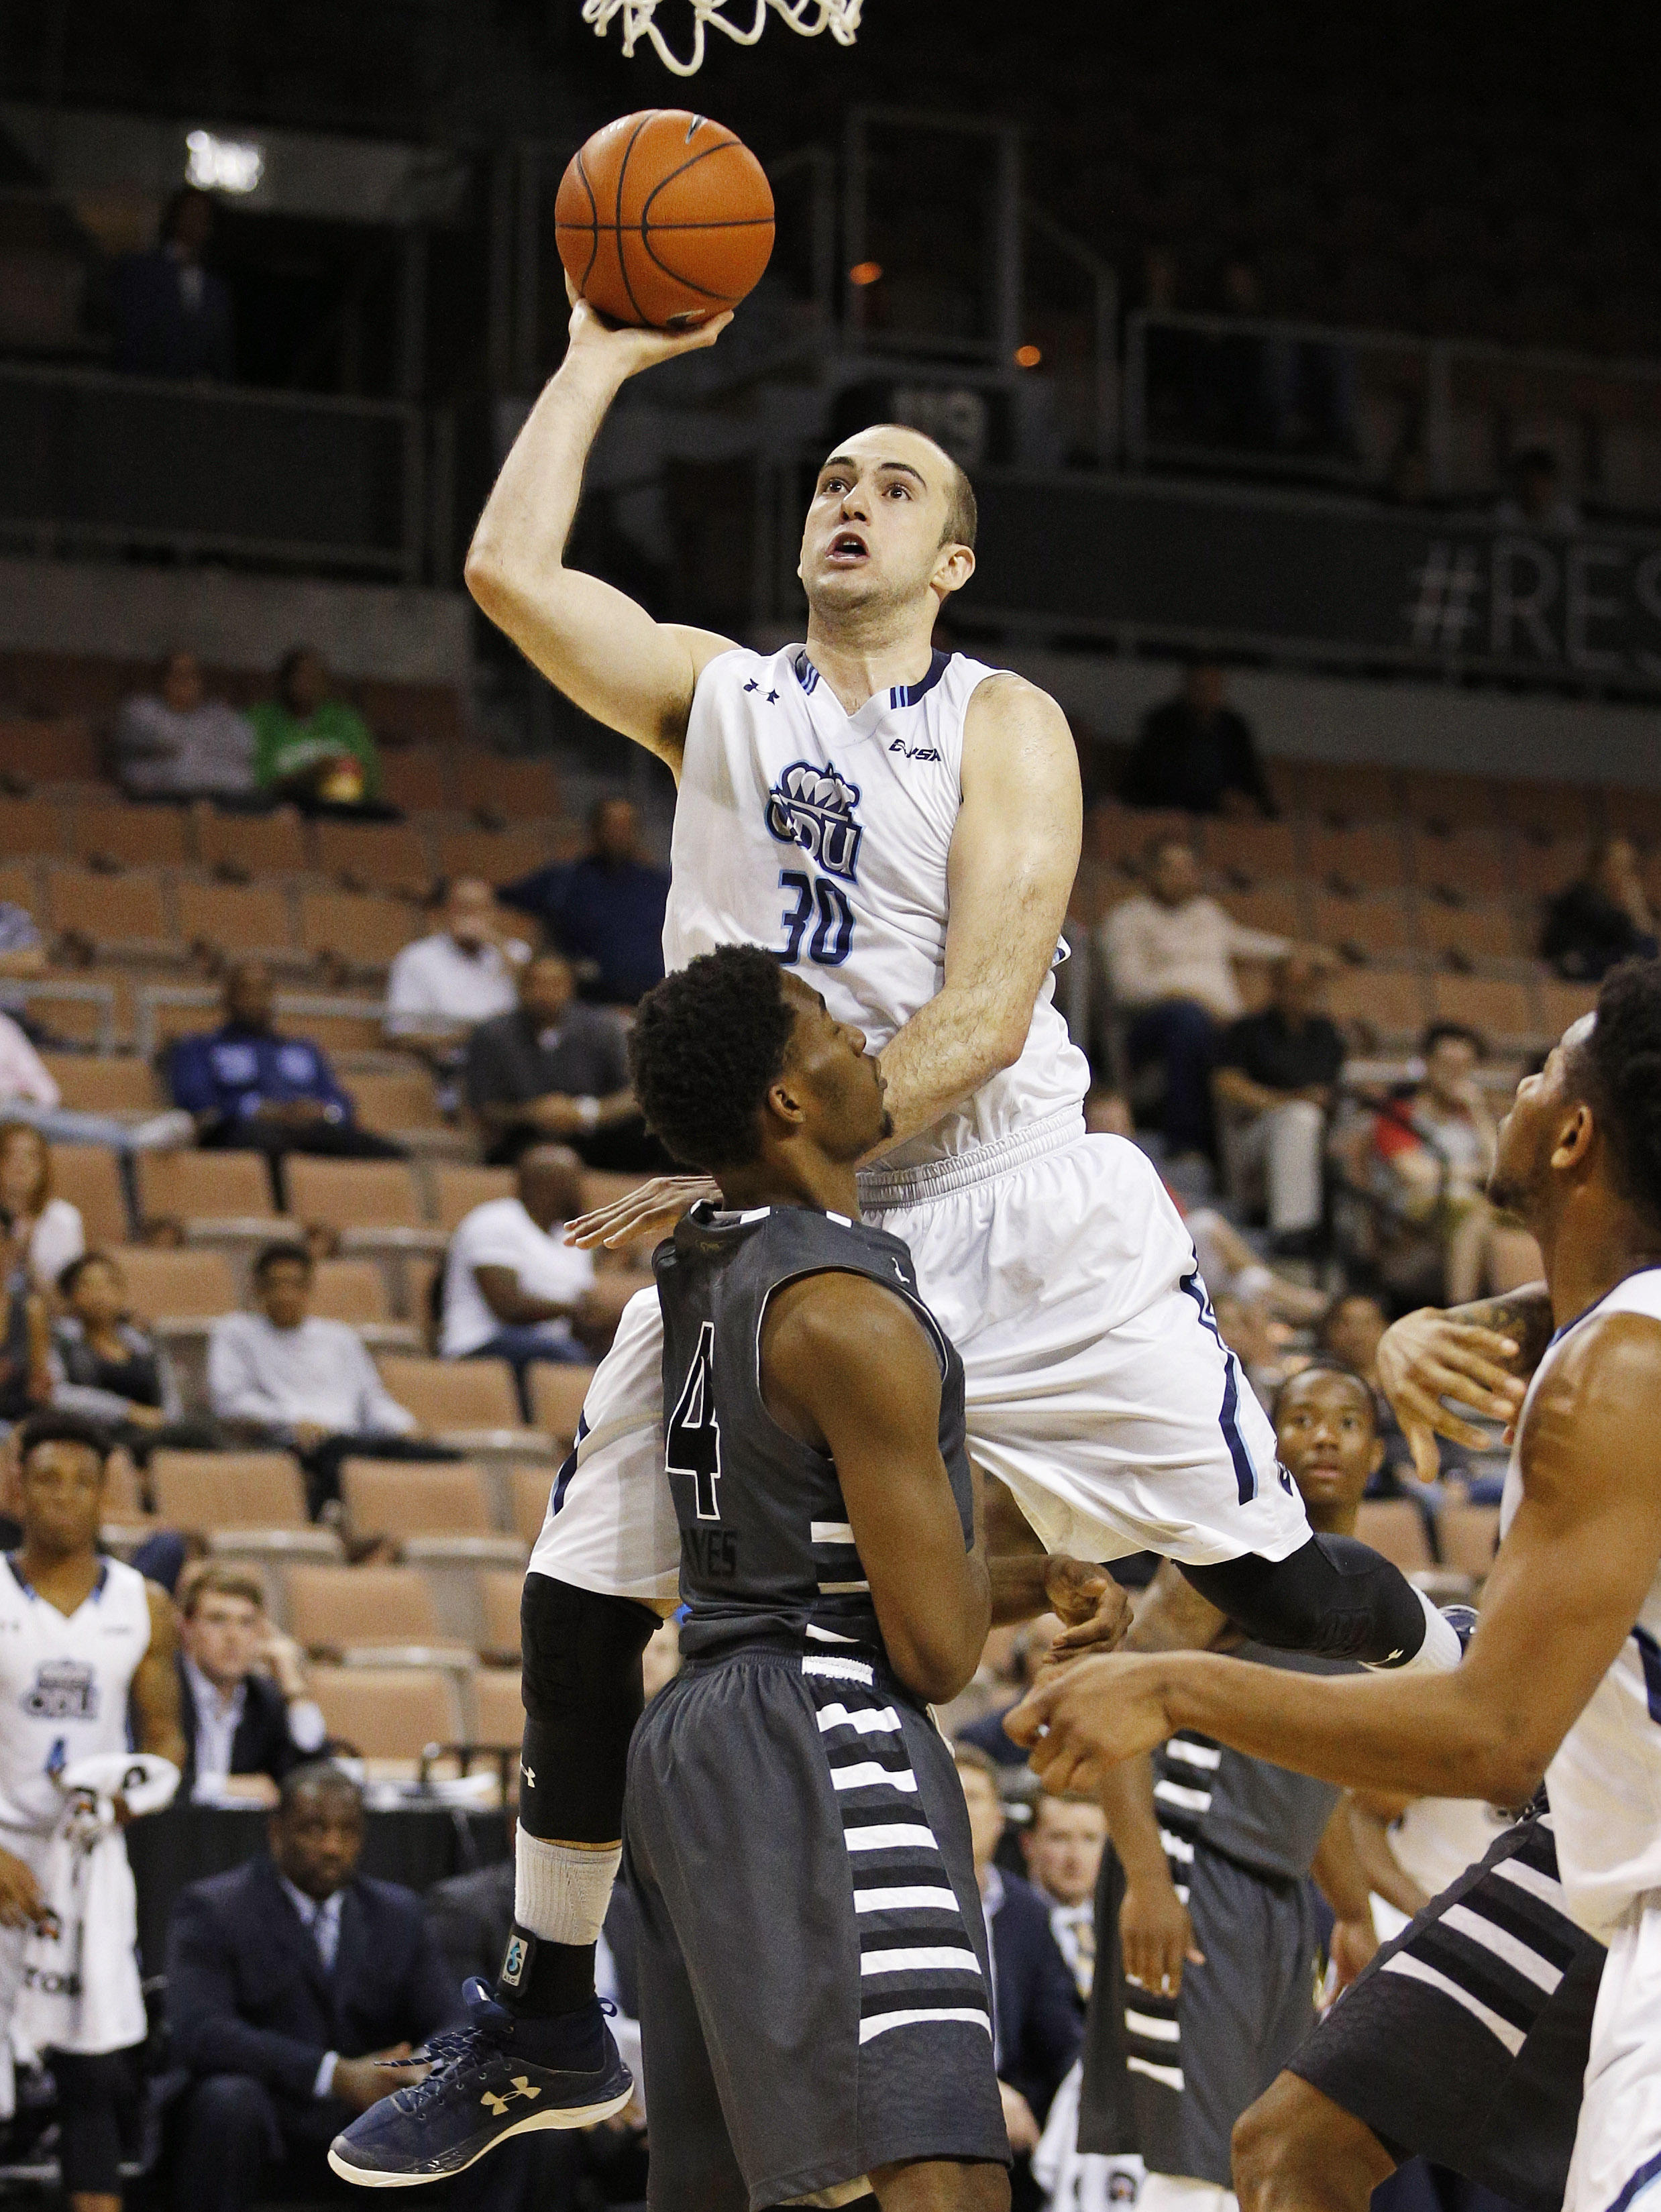 Old Dominion forward Nik Biberaj shoots over Oakland forward Jalen Hayes during the second half of an NCAA college basketball game for the Vegas 16 championship, Wednesday, March 30, 2016, in Las Vegas. Old Dominion won 68-67. (AP Photo/John Locher)